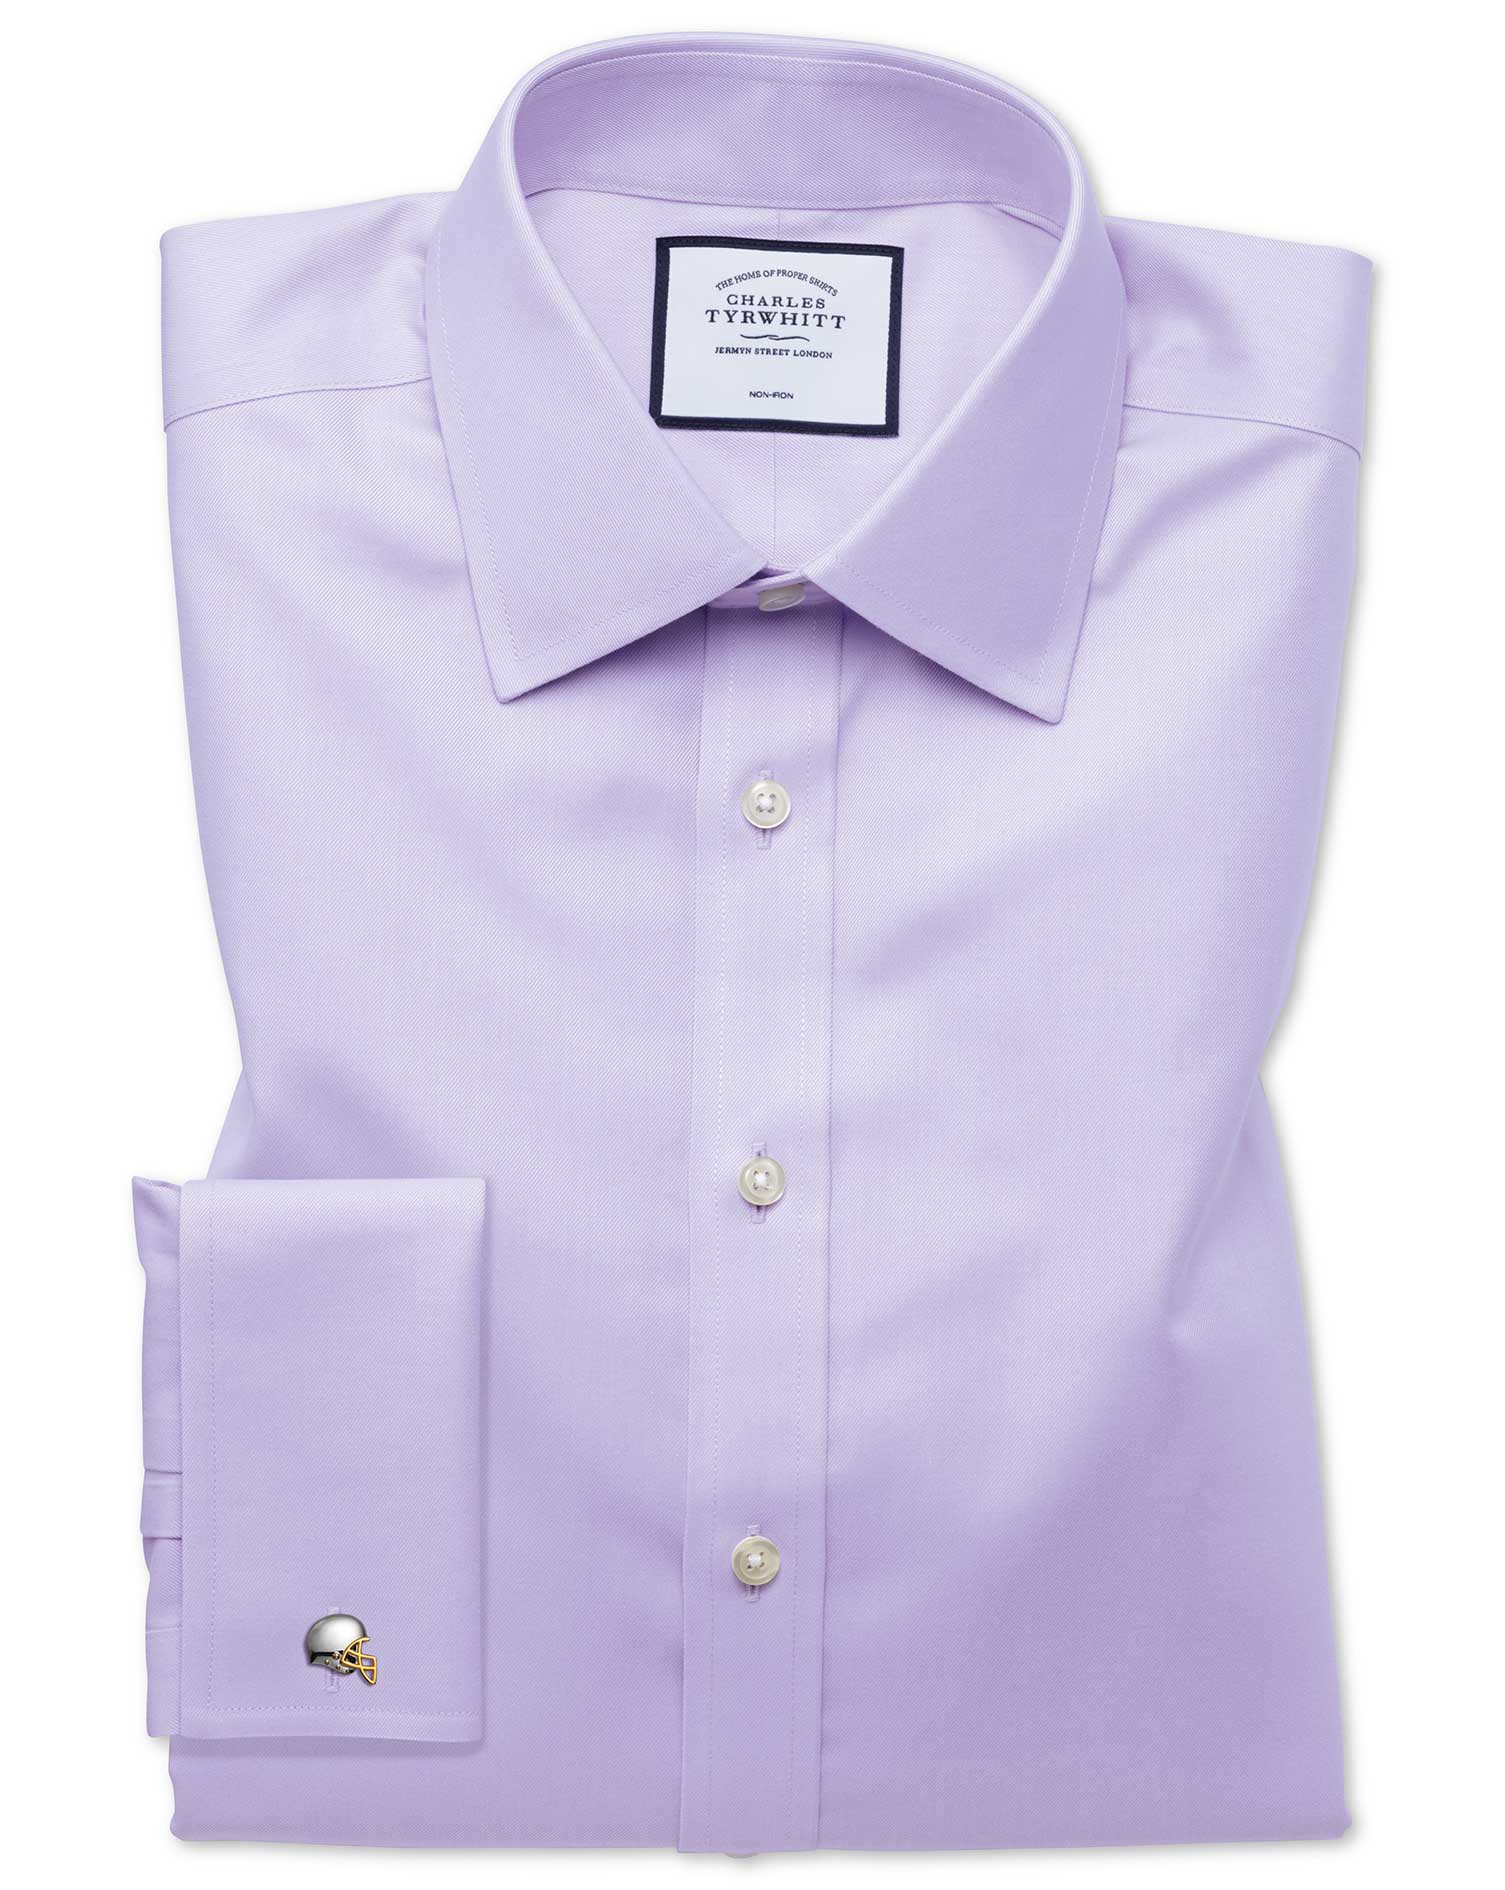 Classic Fit Non-Iron Twill Lilac Cotton Formal Shirt Double Cuff Size 15.5/33 by Charles Tyrwhitt